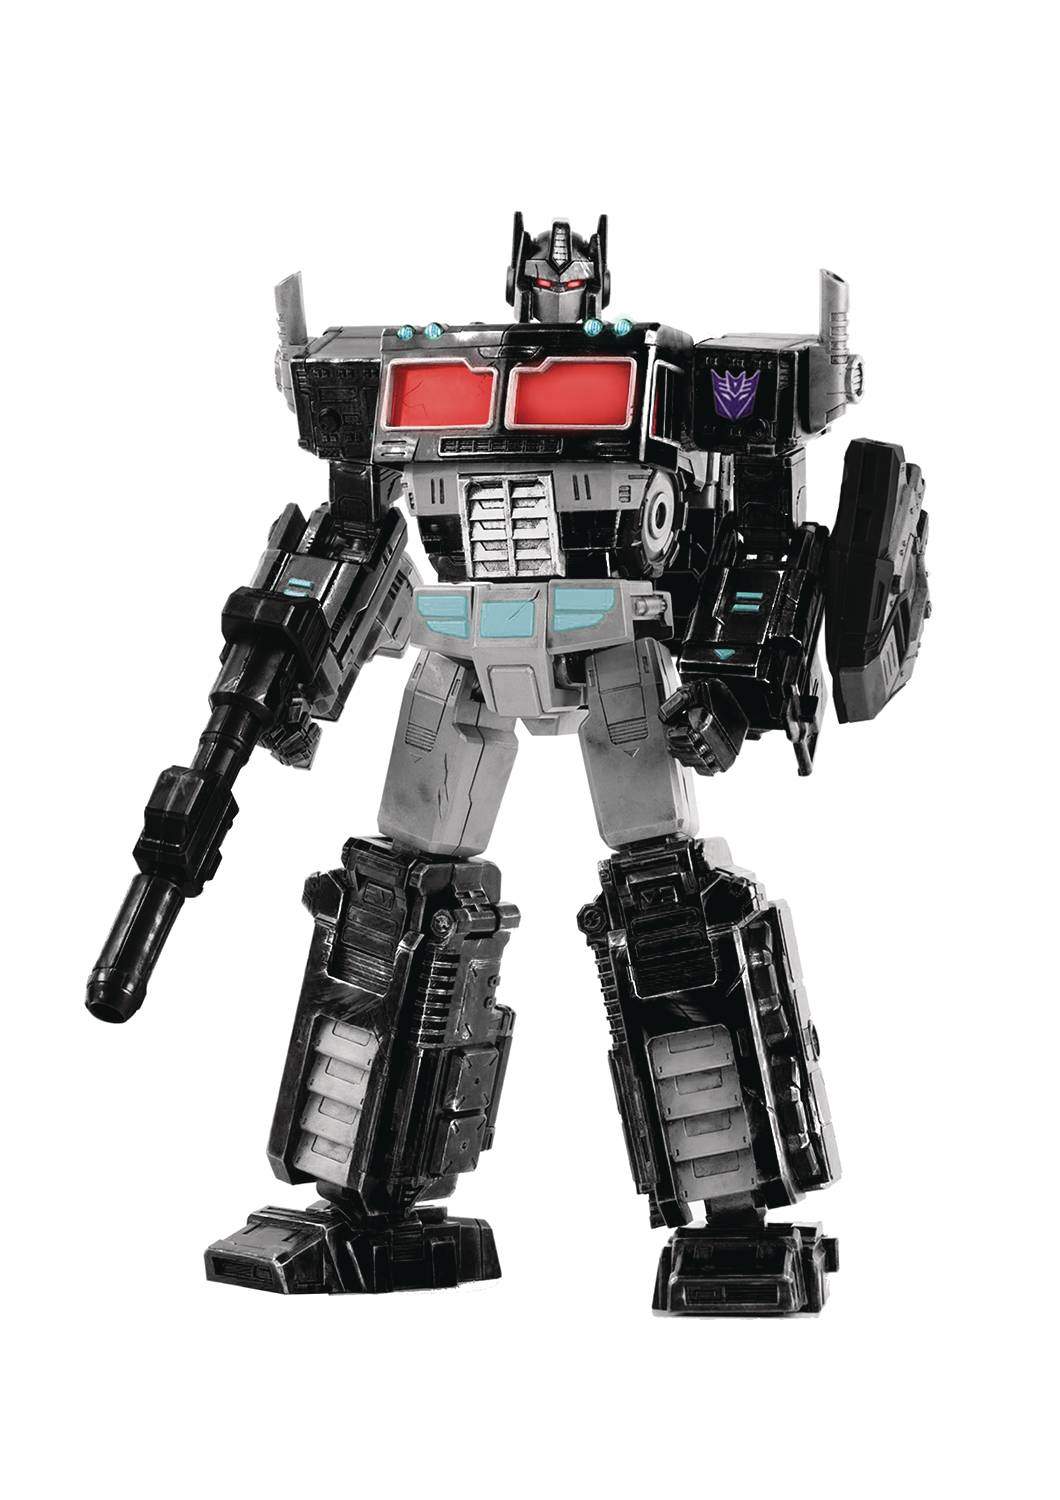 TRANSFORMERS WAR FOR CYBERTRON NEMESIS PRIME PX DLX FIG (NET